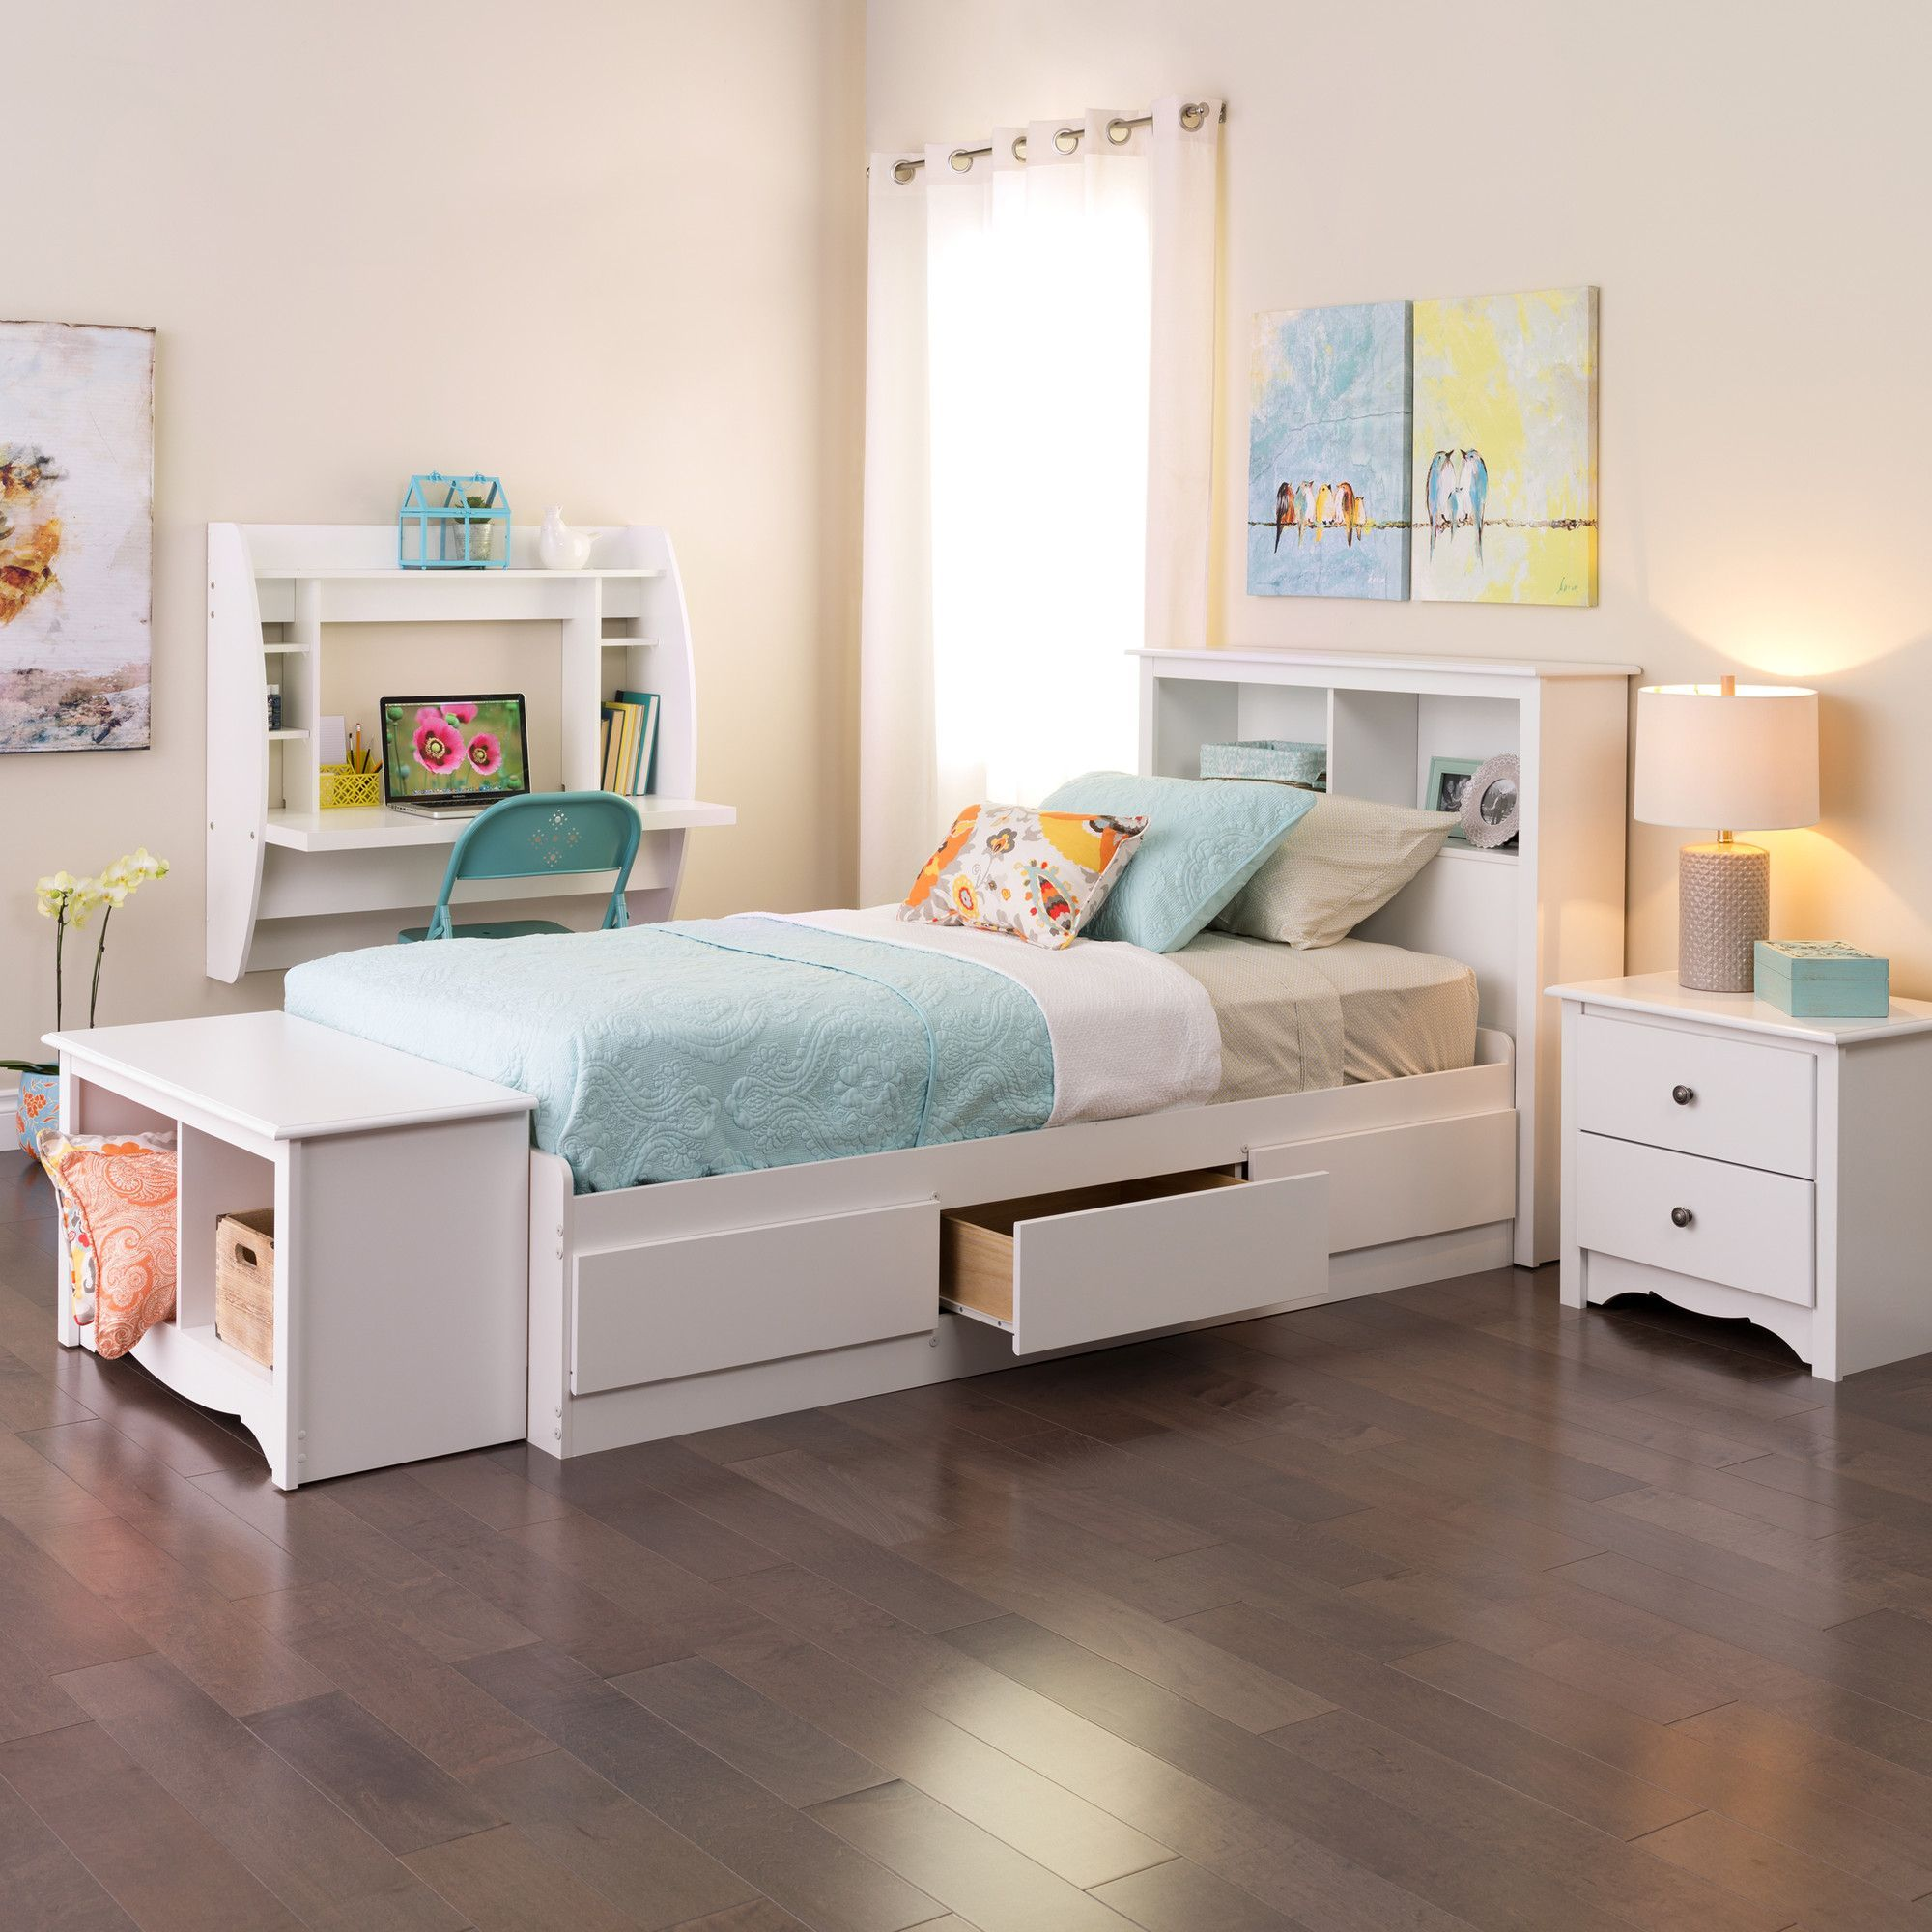 belmont frame full p twin wood base prod essential drawers lots size california storage with of double pine frames captains canopy home king beds honey platform mates underneath spin bed